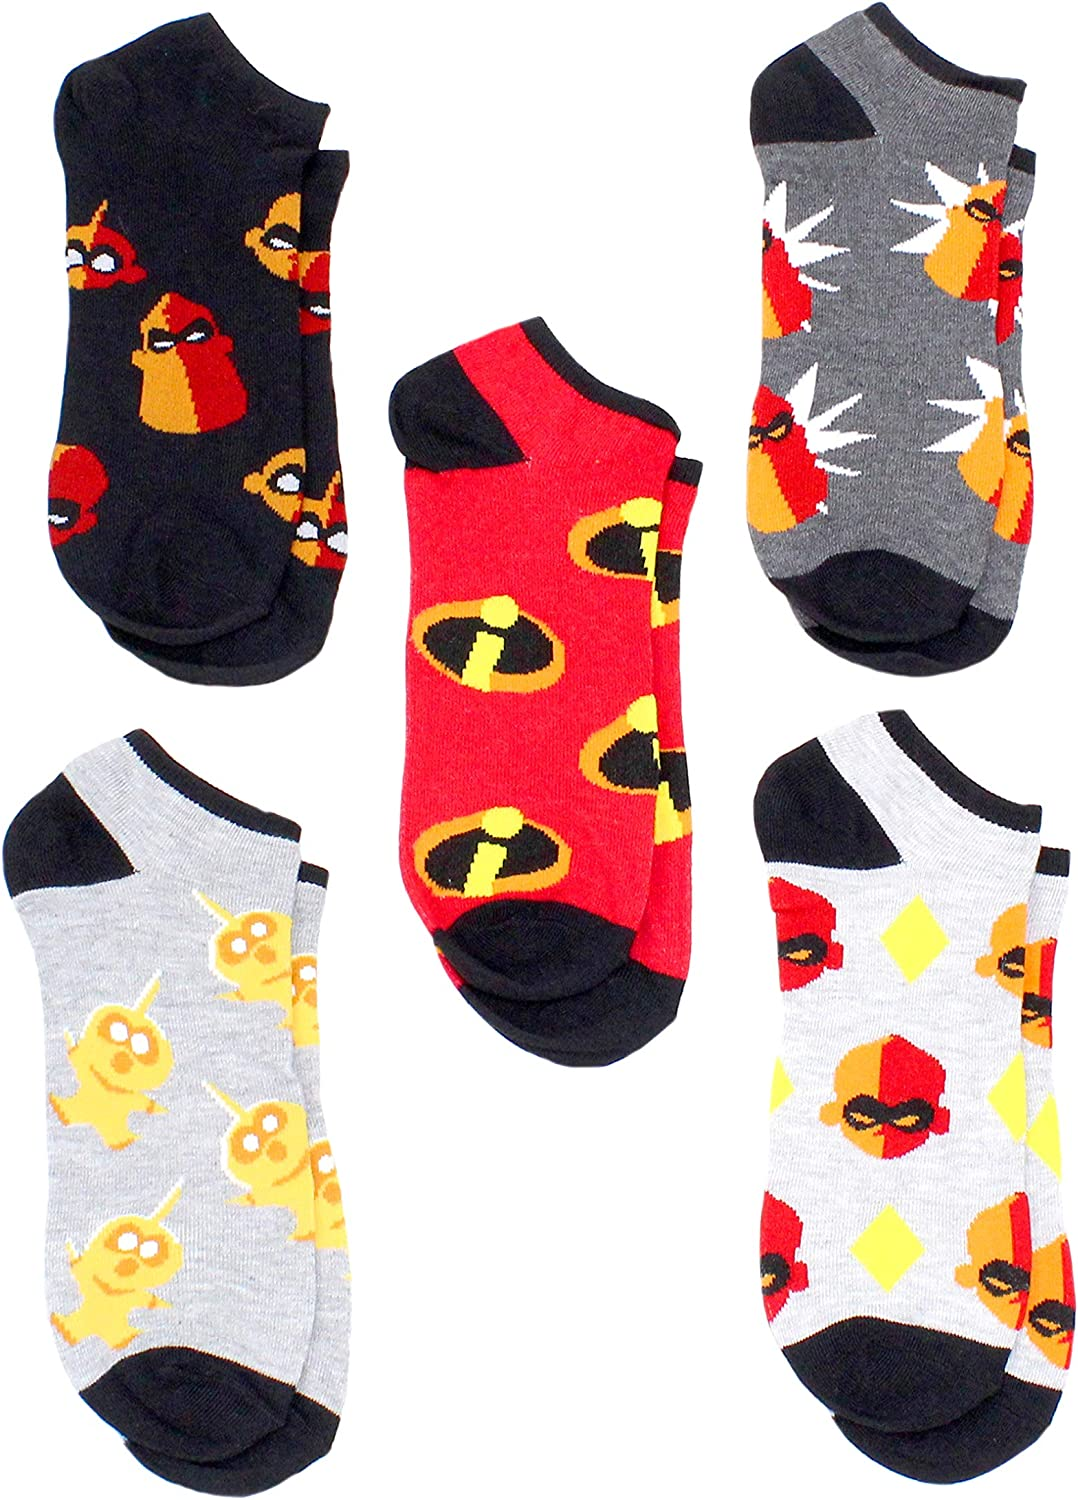 Disney Mens The Incredibles 2 Movie 5 Pack (5 Pair) No Show Socks, Black/Red, 10-13